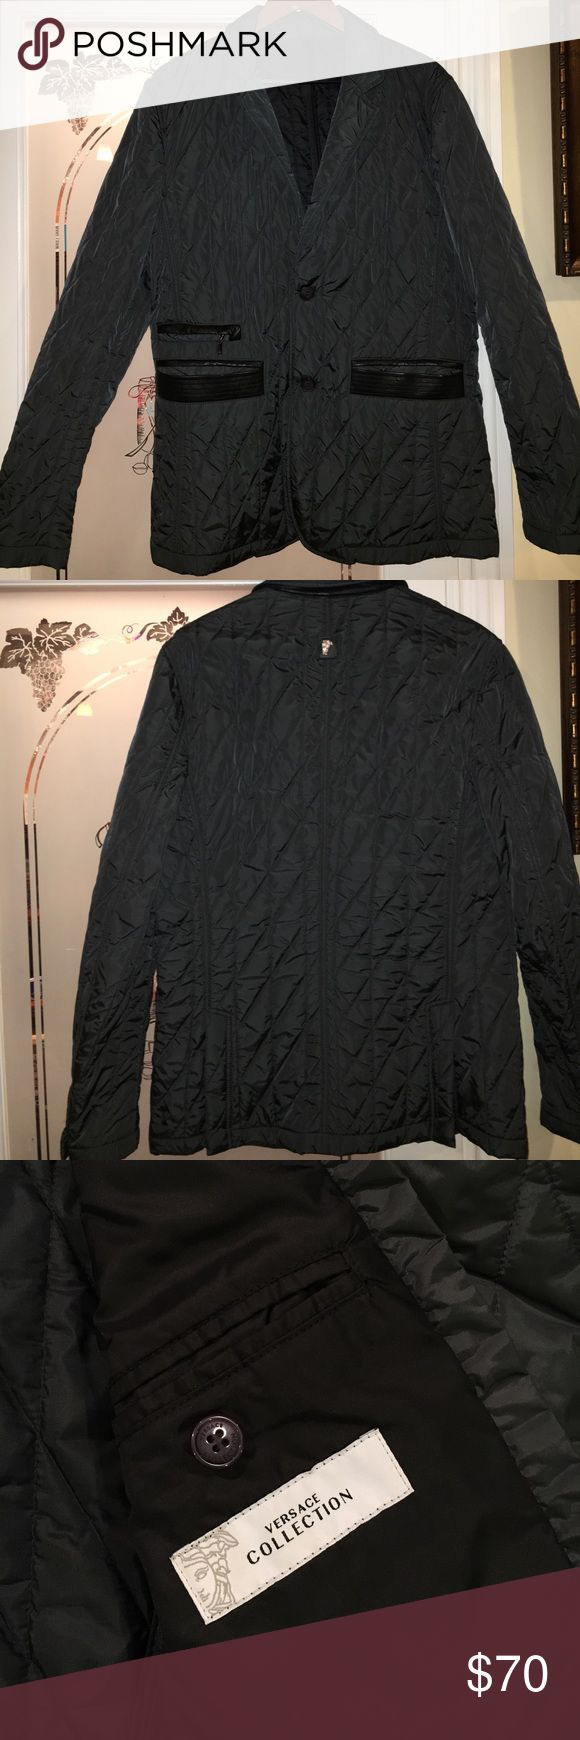 Versace blazer Versace collection  waterproof blazer/coat color grey with black leather trim on front pockets size Euro 52 used once practically brand new condition Versace Suits & Blazers Sport Coats & Blazers